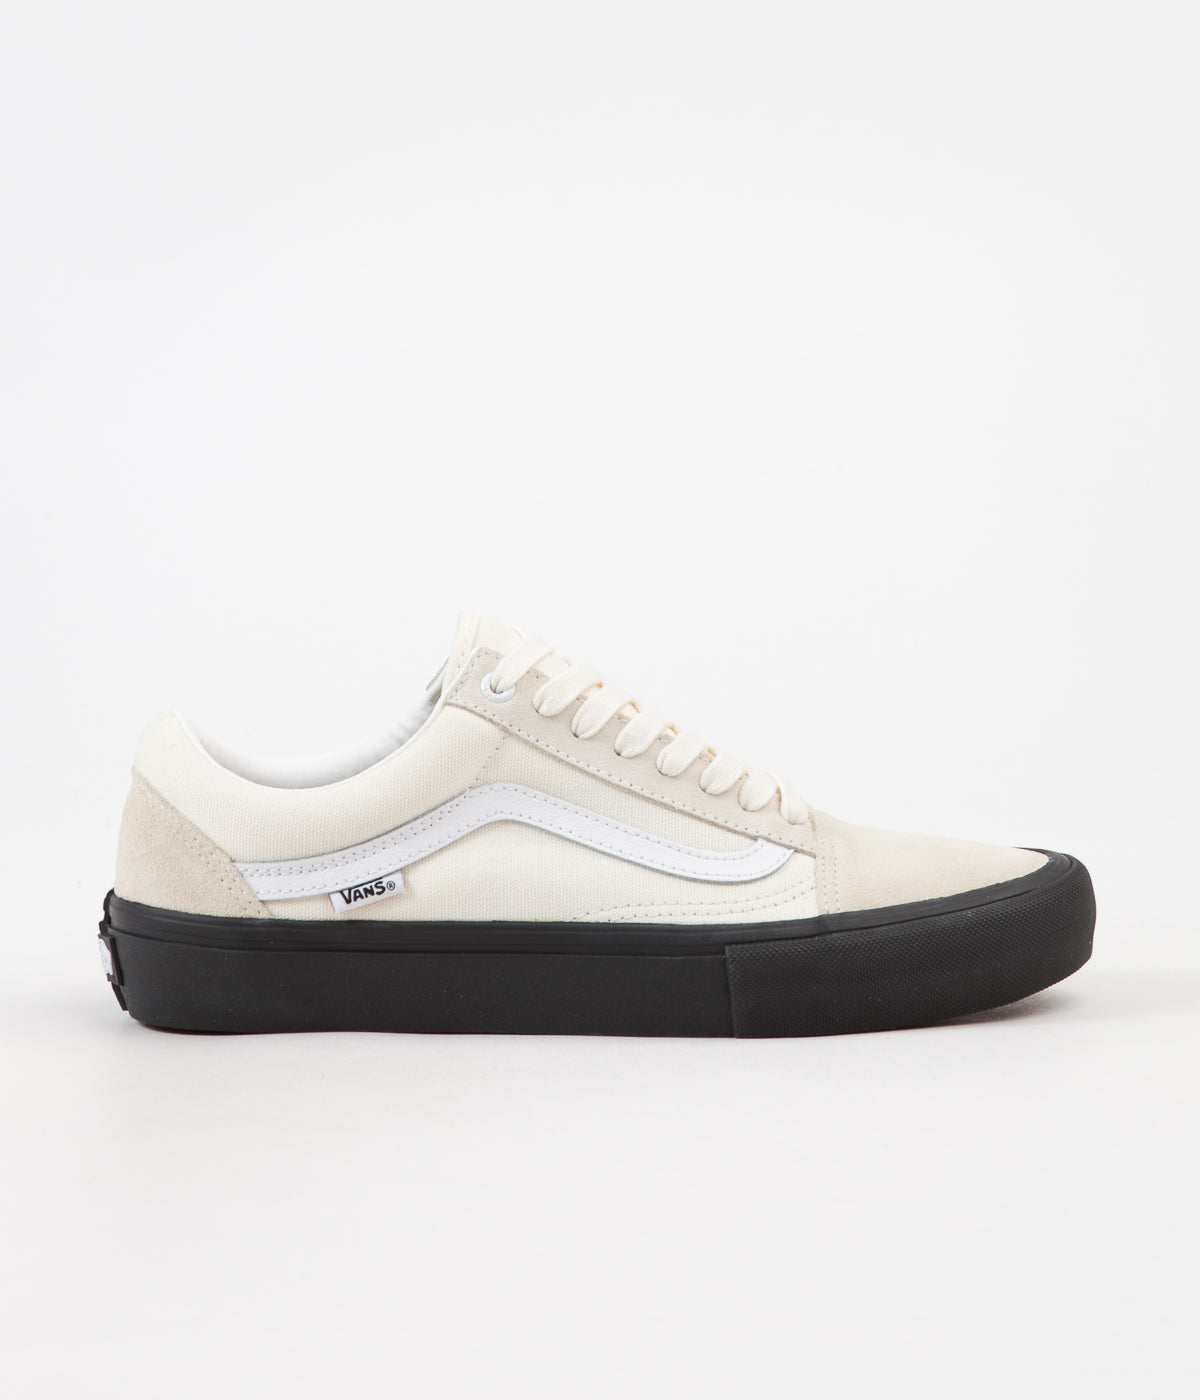 9b463bb8040827 Vans Old Skool Pro Shoes - Classic White   Black